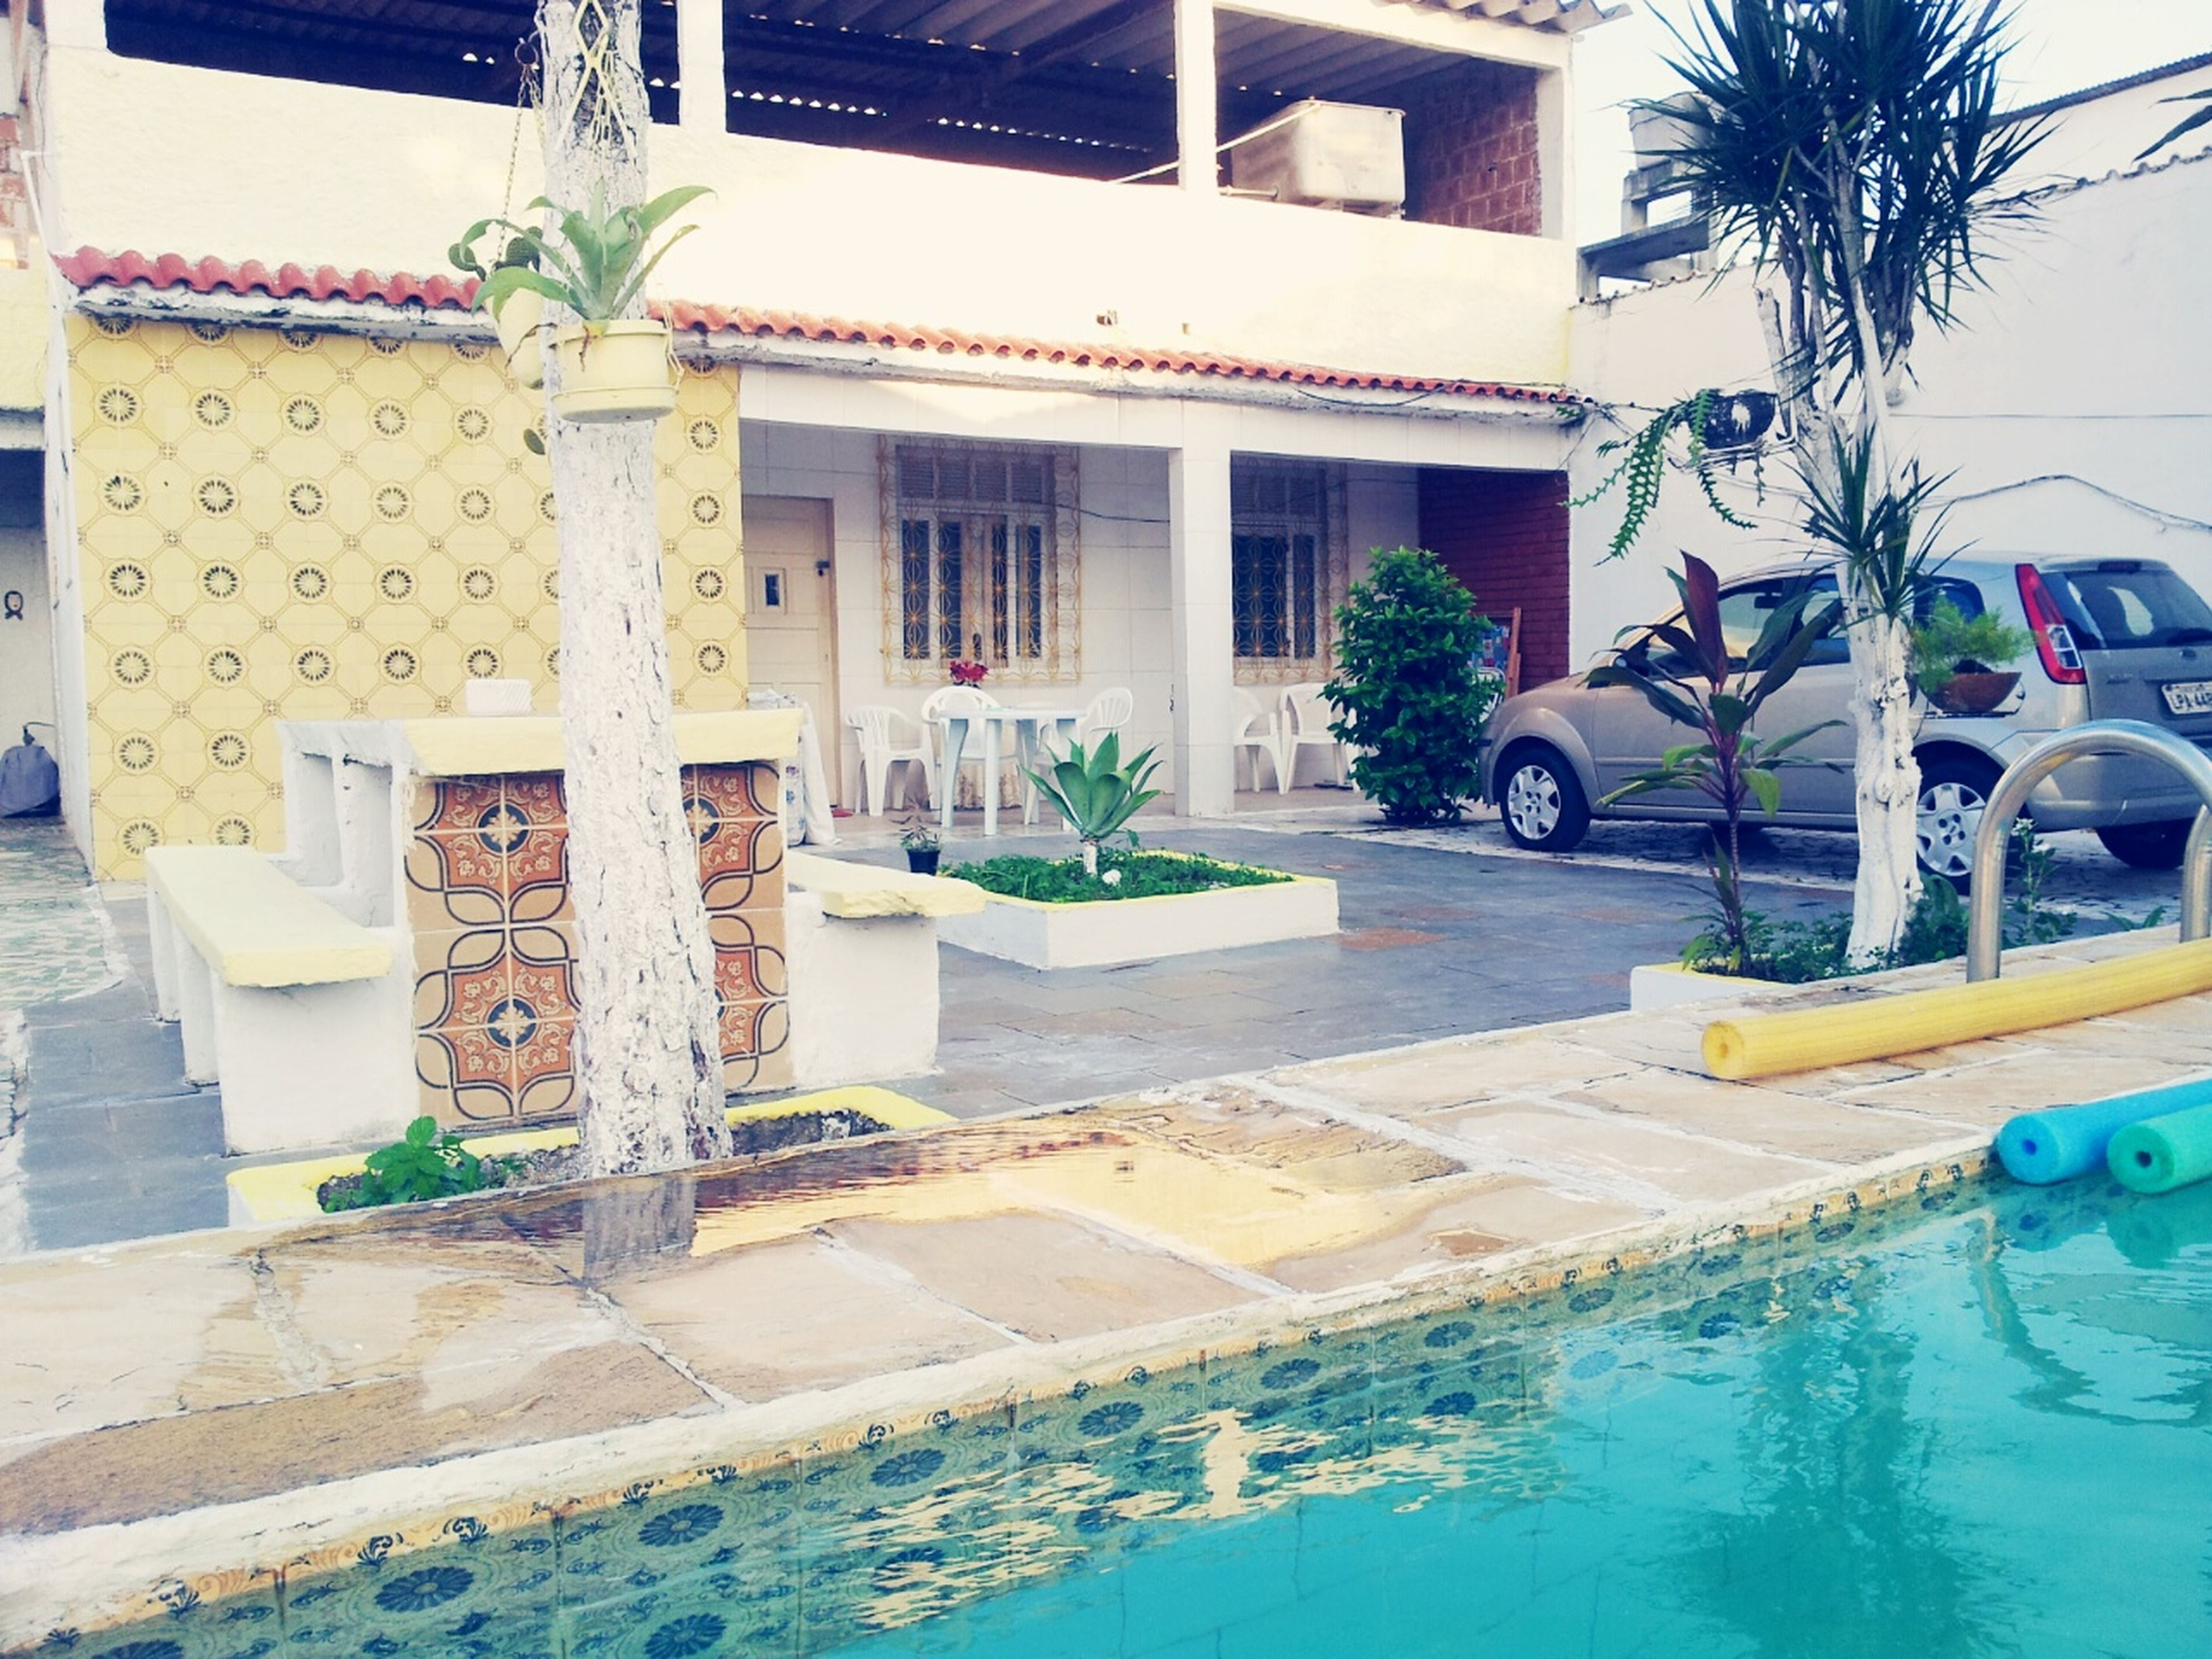 building exterior, architecture, built structure, house, residential building, residential structure, tree, palm tree, city, building, potted plant, window, street, sidewalk, swimming pool, sunlight, day, outdoors, balcony, incidental people